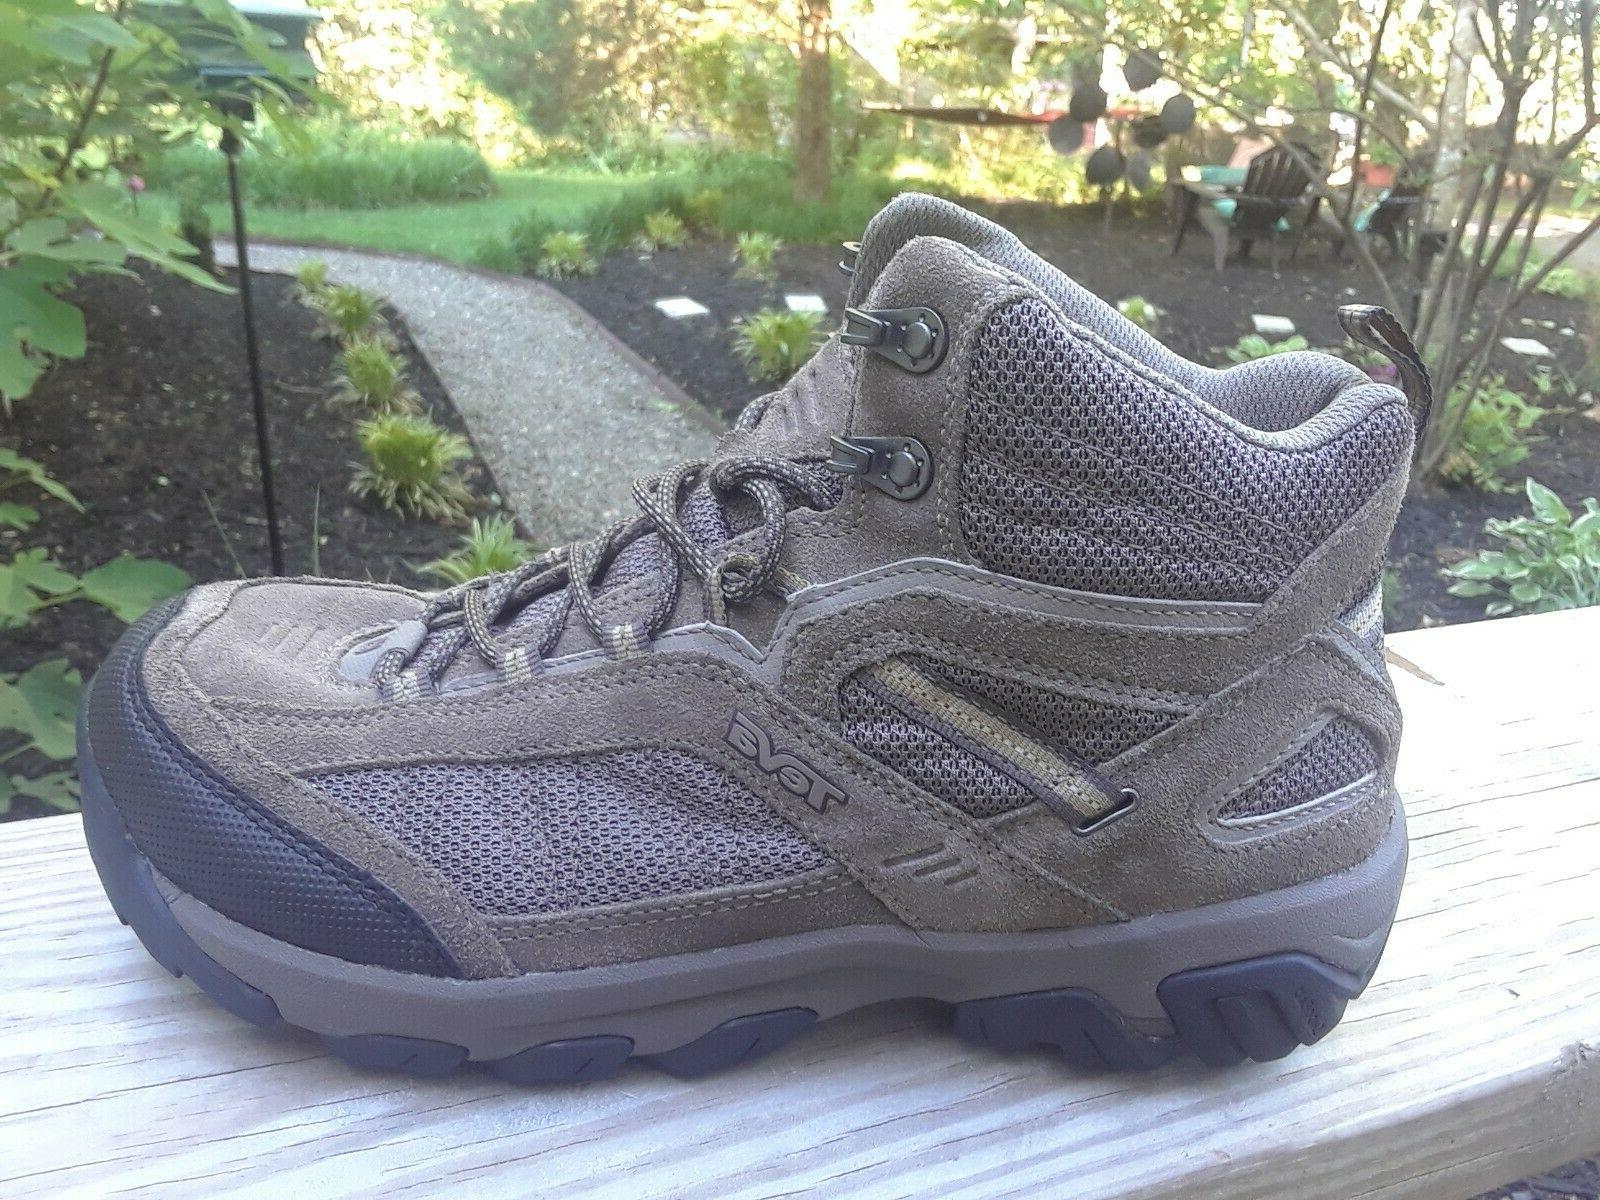 verdon mid suede waterproof trail hiking boots